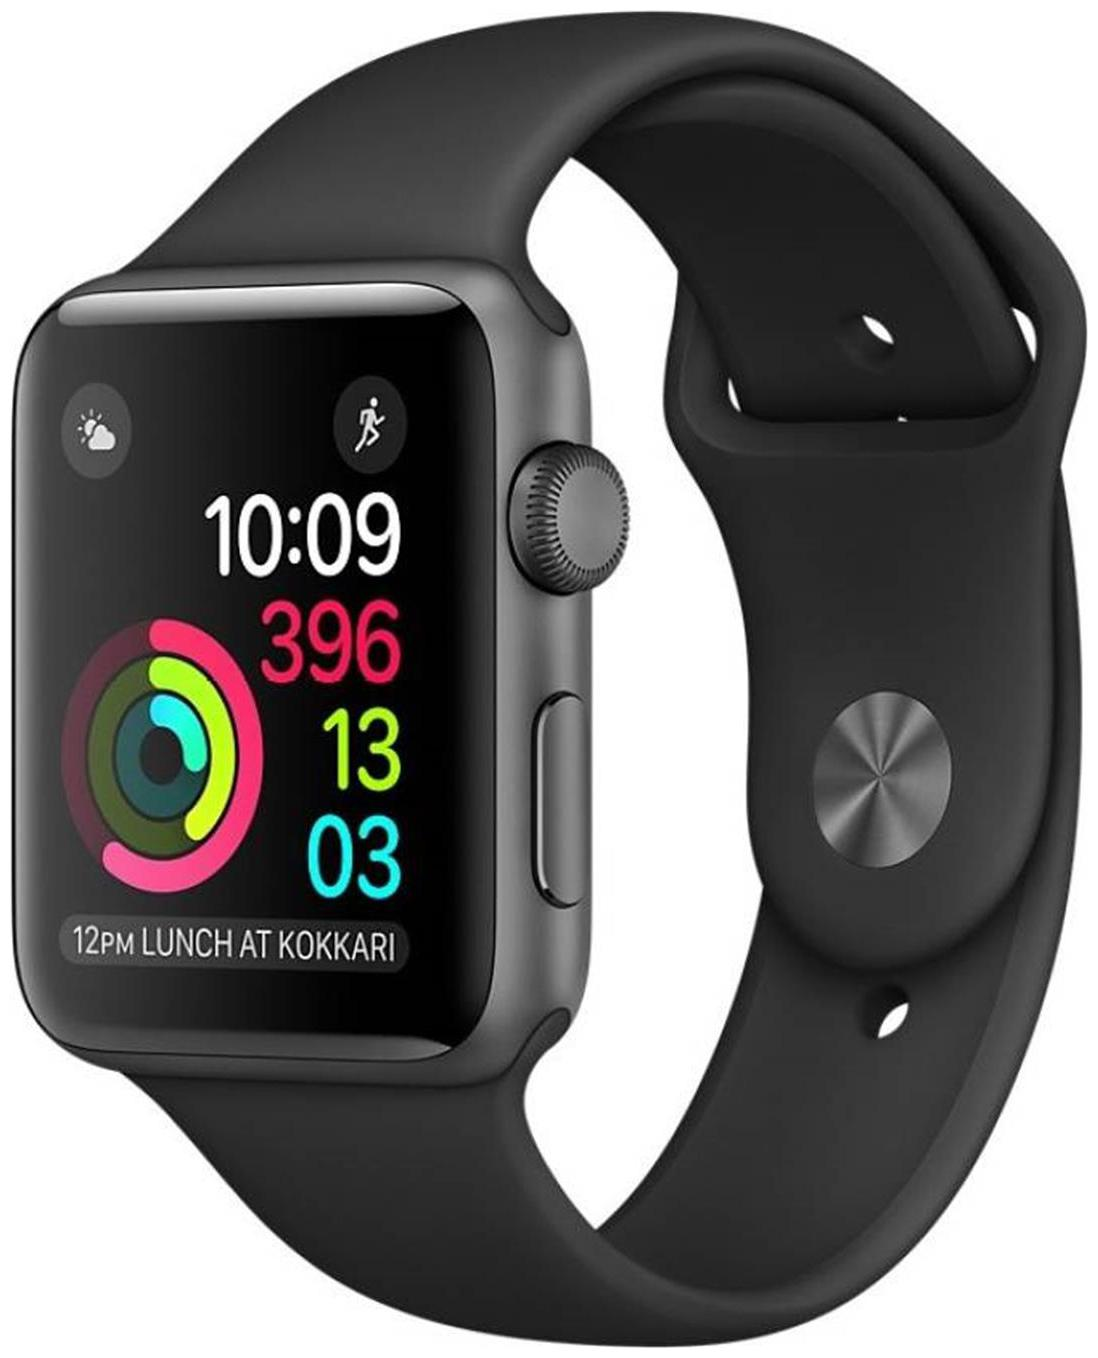 https://assetscdn1.paytm.com/images/catalog/product/M/MO/MOBAPPLE-WATCH-TRES73954BB21AAF5/1562655386594_0..jpeg